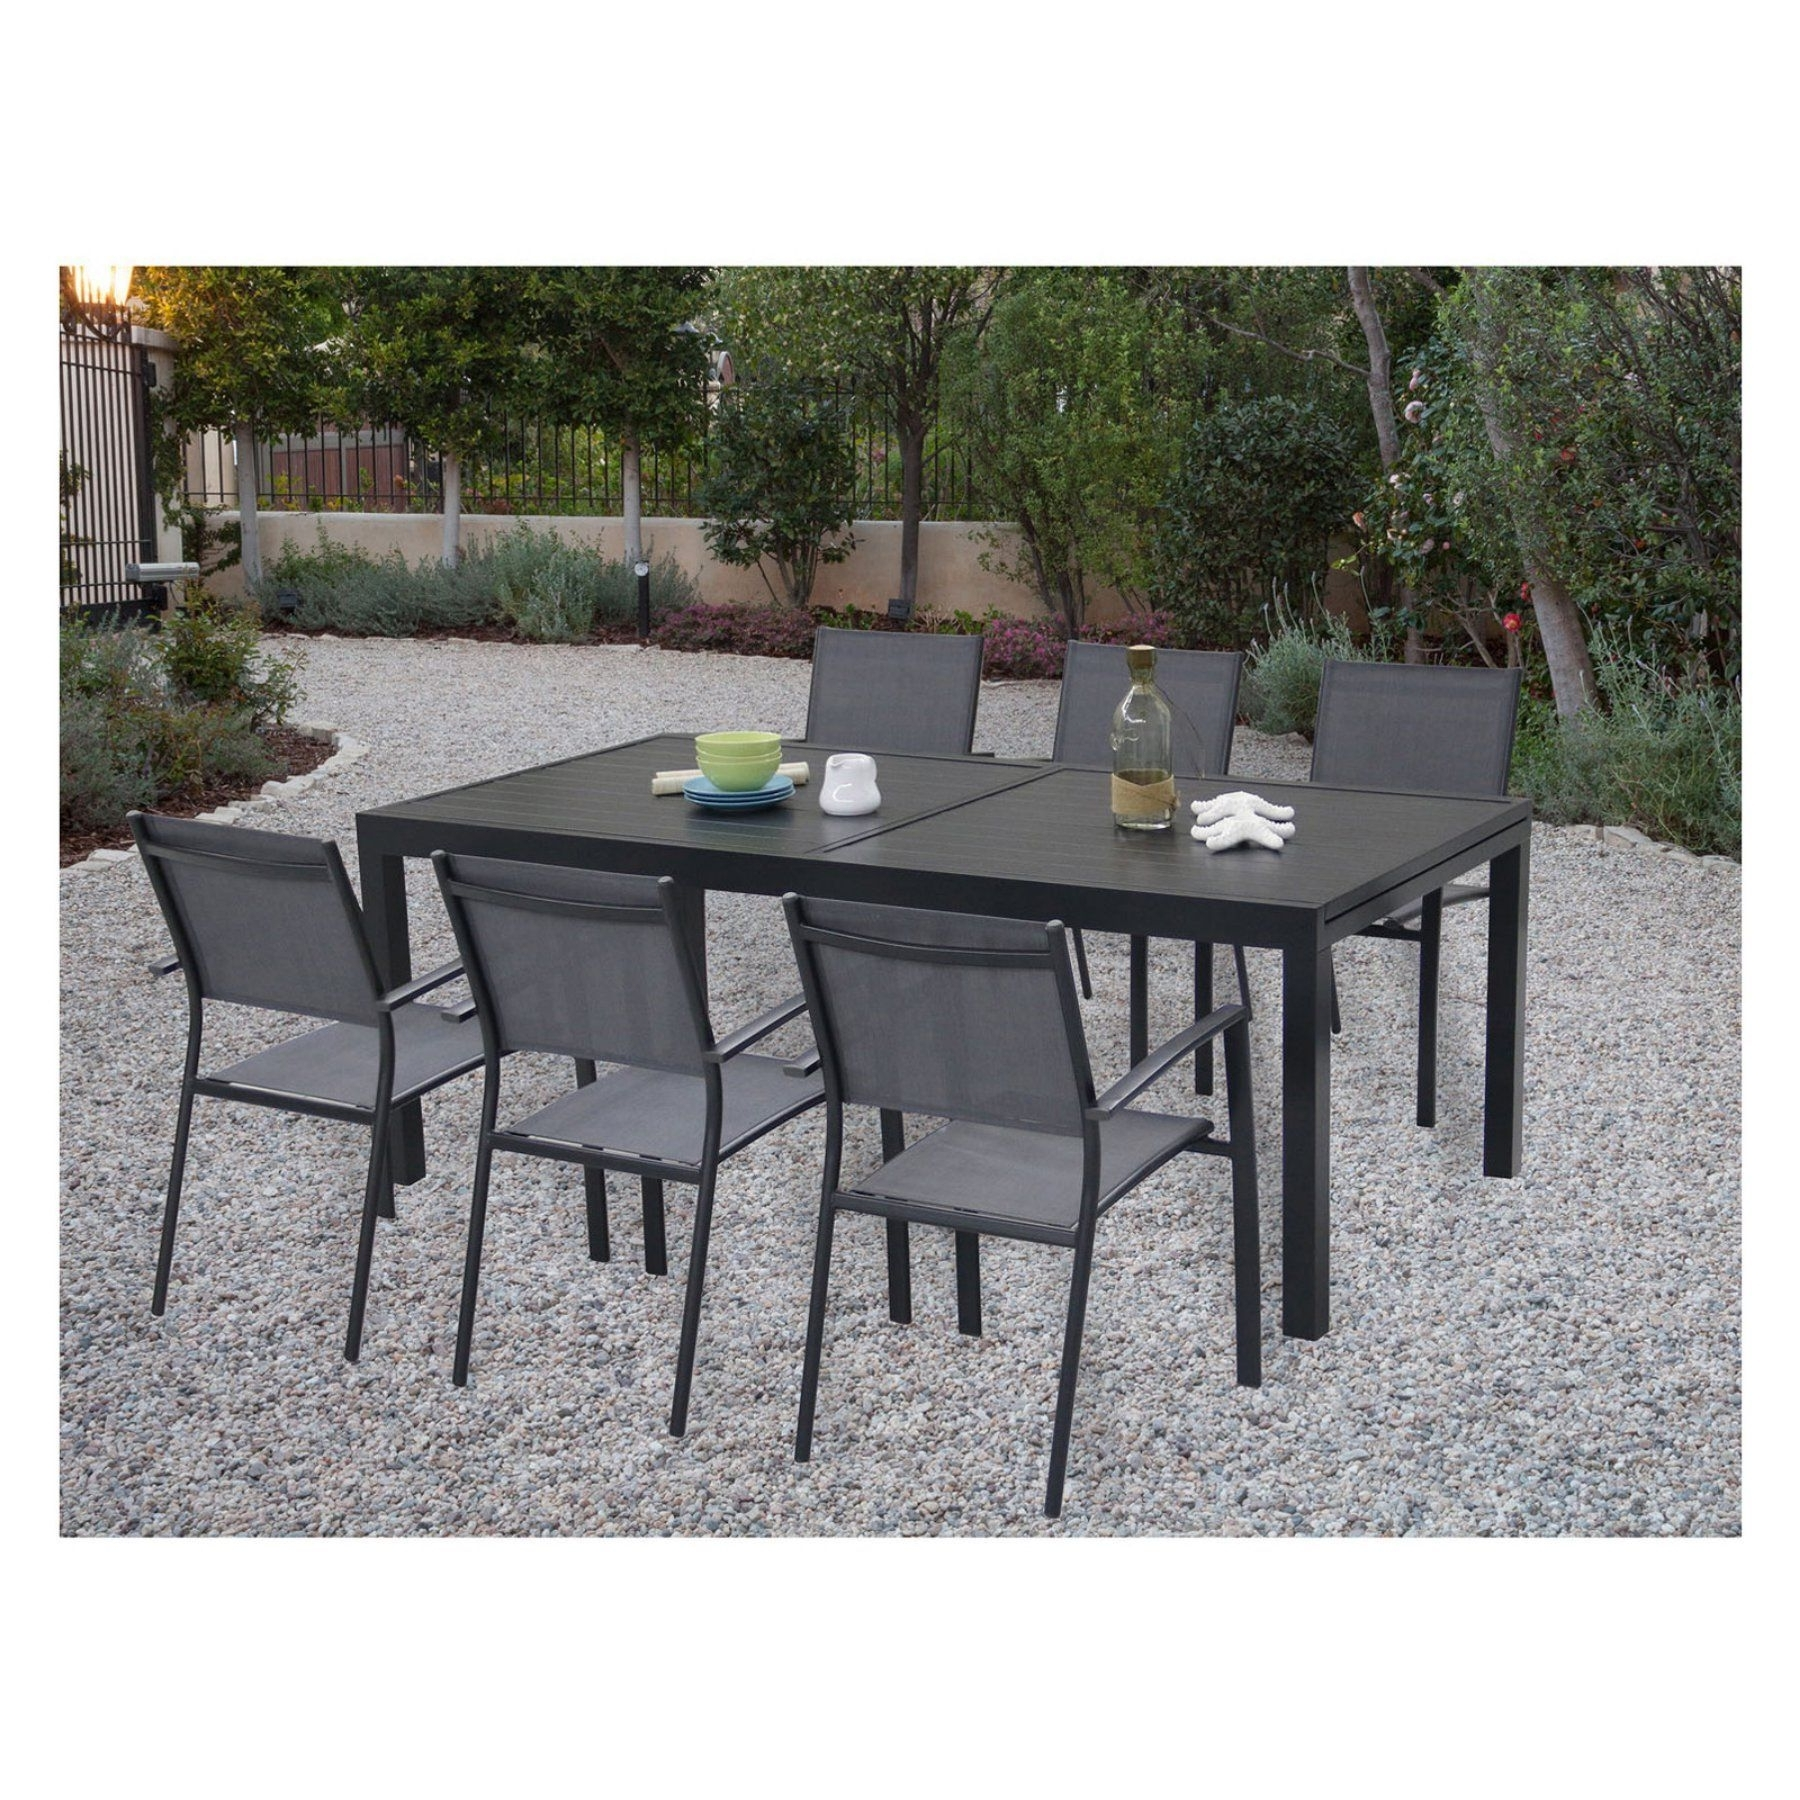 Candice Ii 7 Piece Extension Rectangular Dining Sets With Slat Back Side Chairs Inside Trendy Outdoor Cambridge Nova Aluminum 7 Piece Rectangular Patio Dining Set (View 21 of 25)